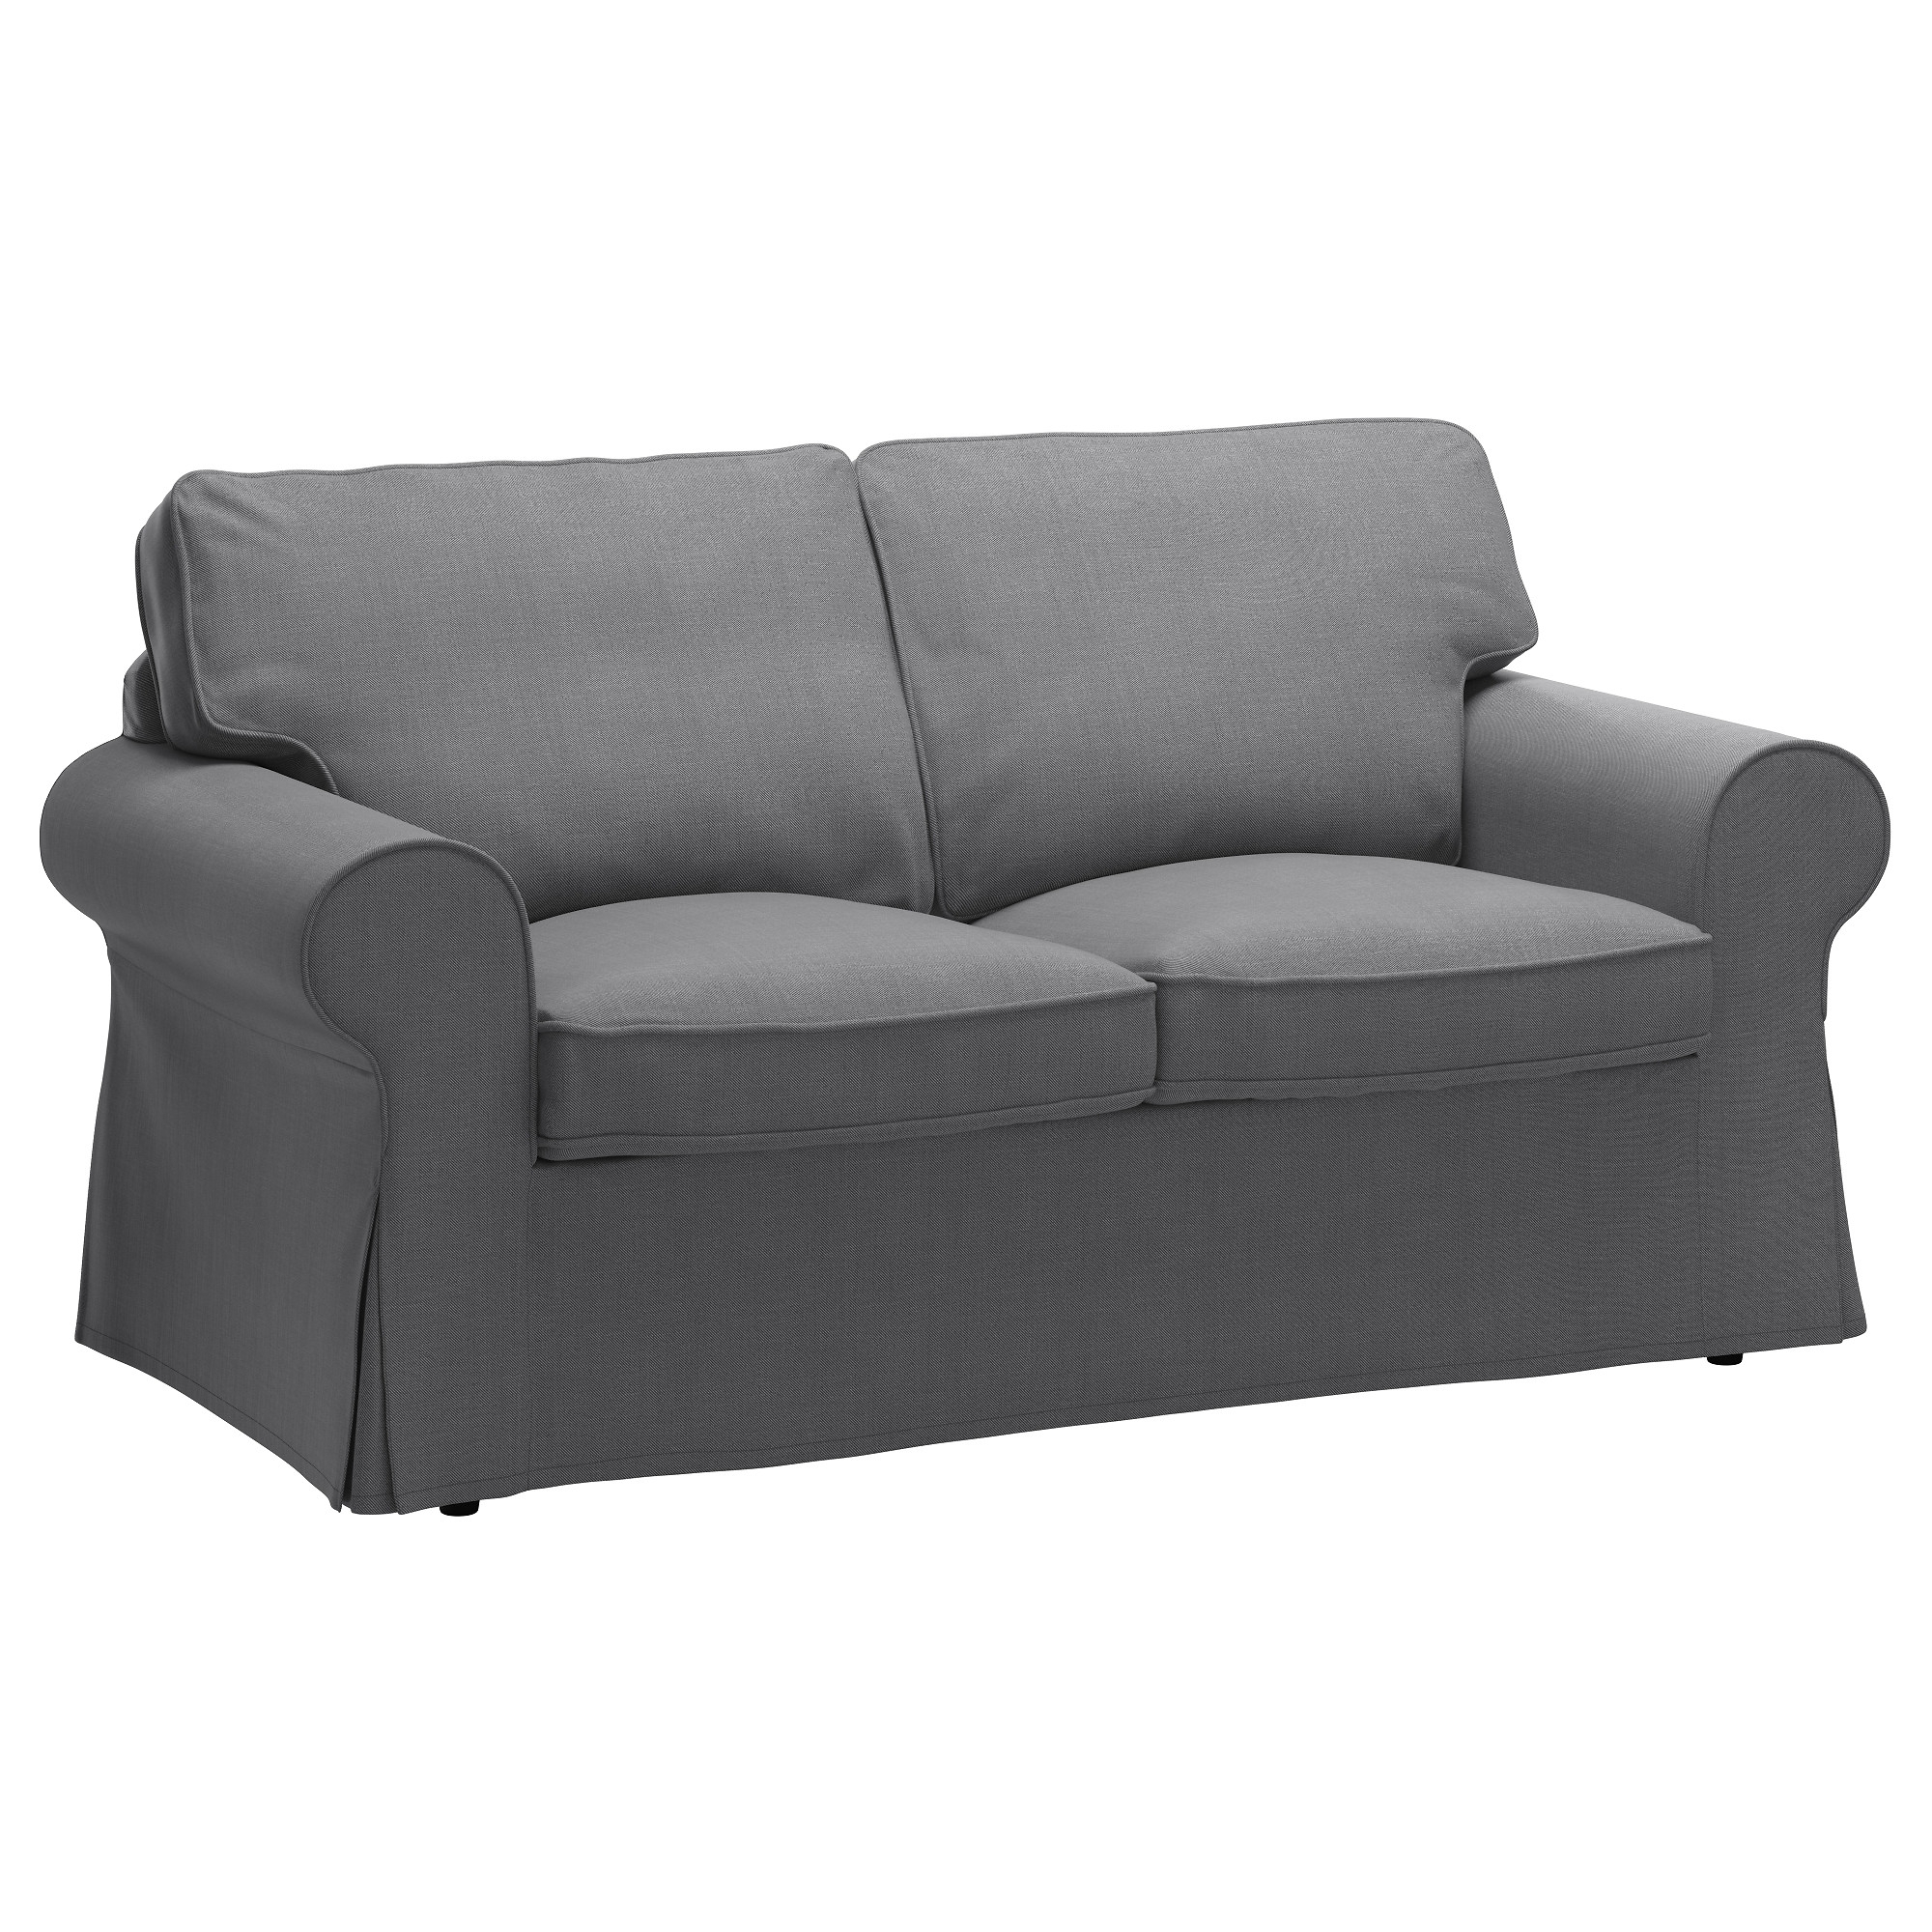 Most Up To Date Sofa : Ikea Karlstad 2 Seater Sofa Gumtree Ikea Karlstad Sofa For Small 2 Seater Sofas (View 8 of 15)